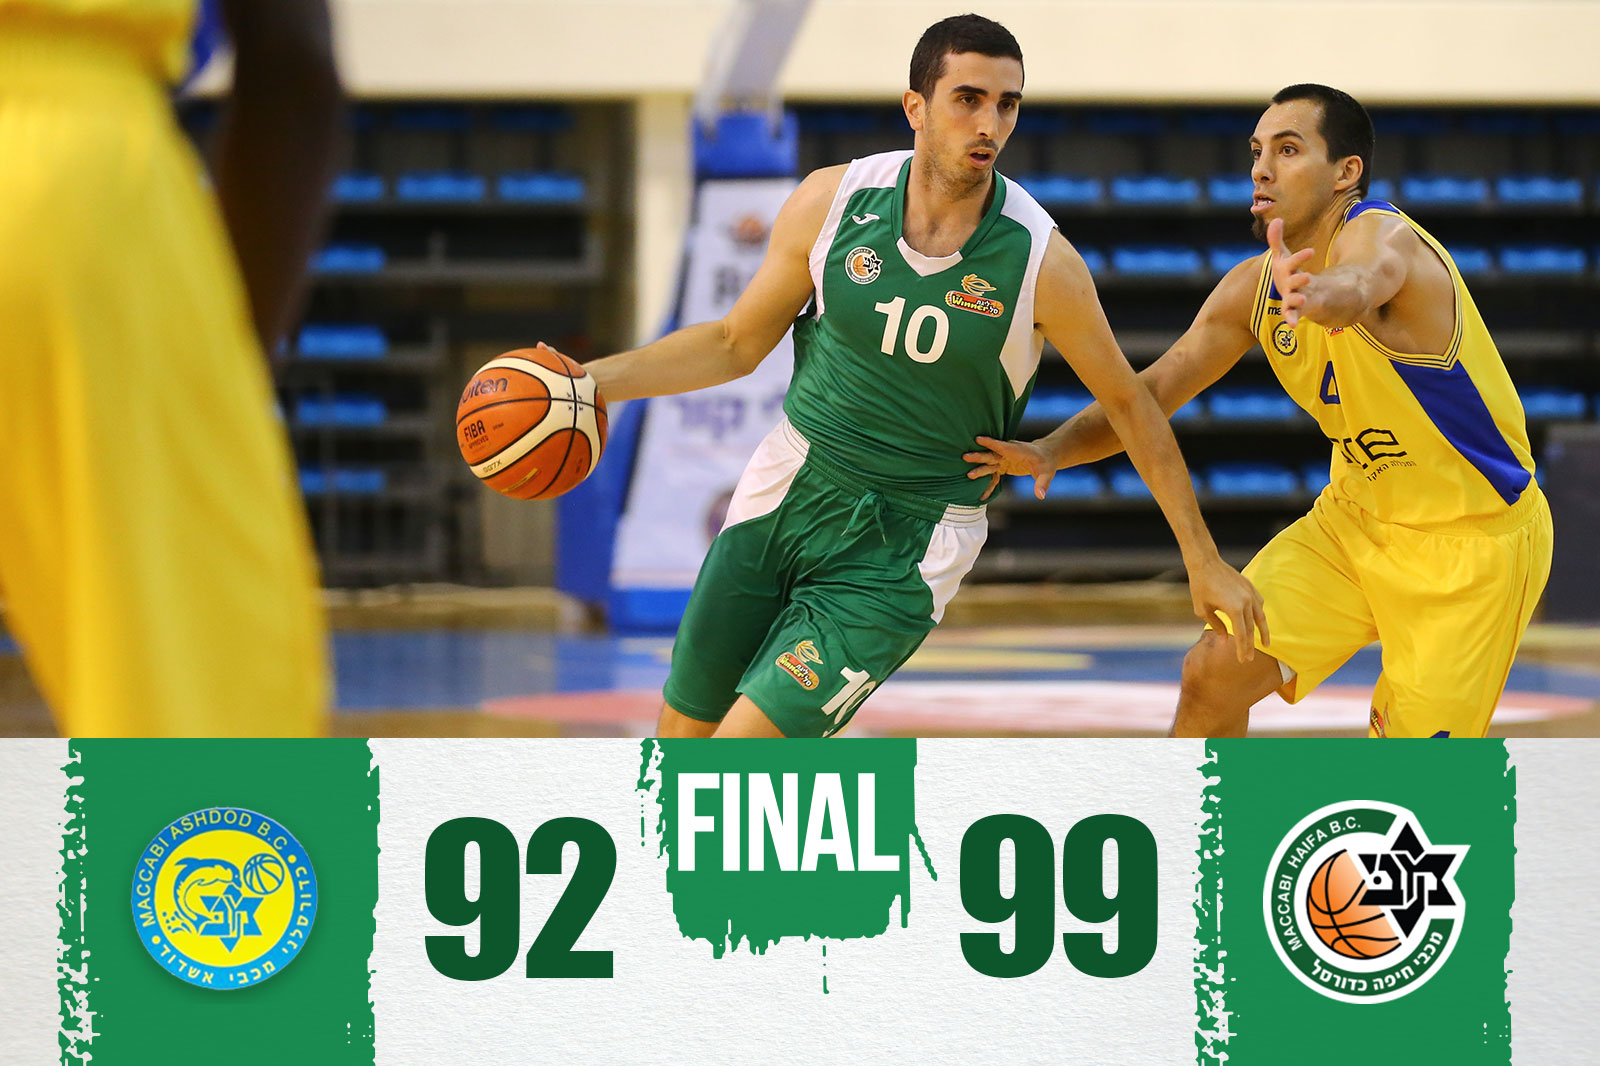 Second road win in a row! 99-92 at Ashdod